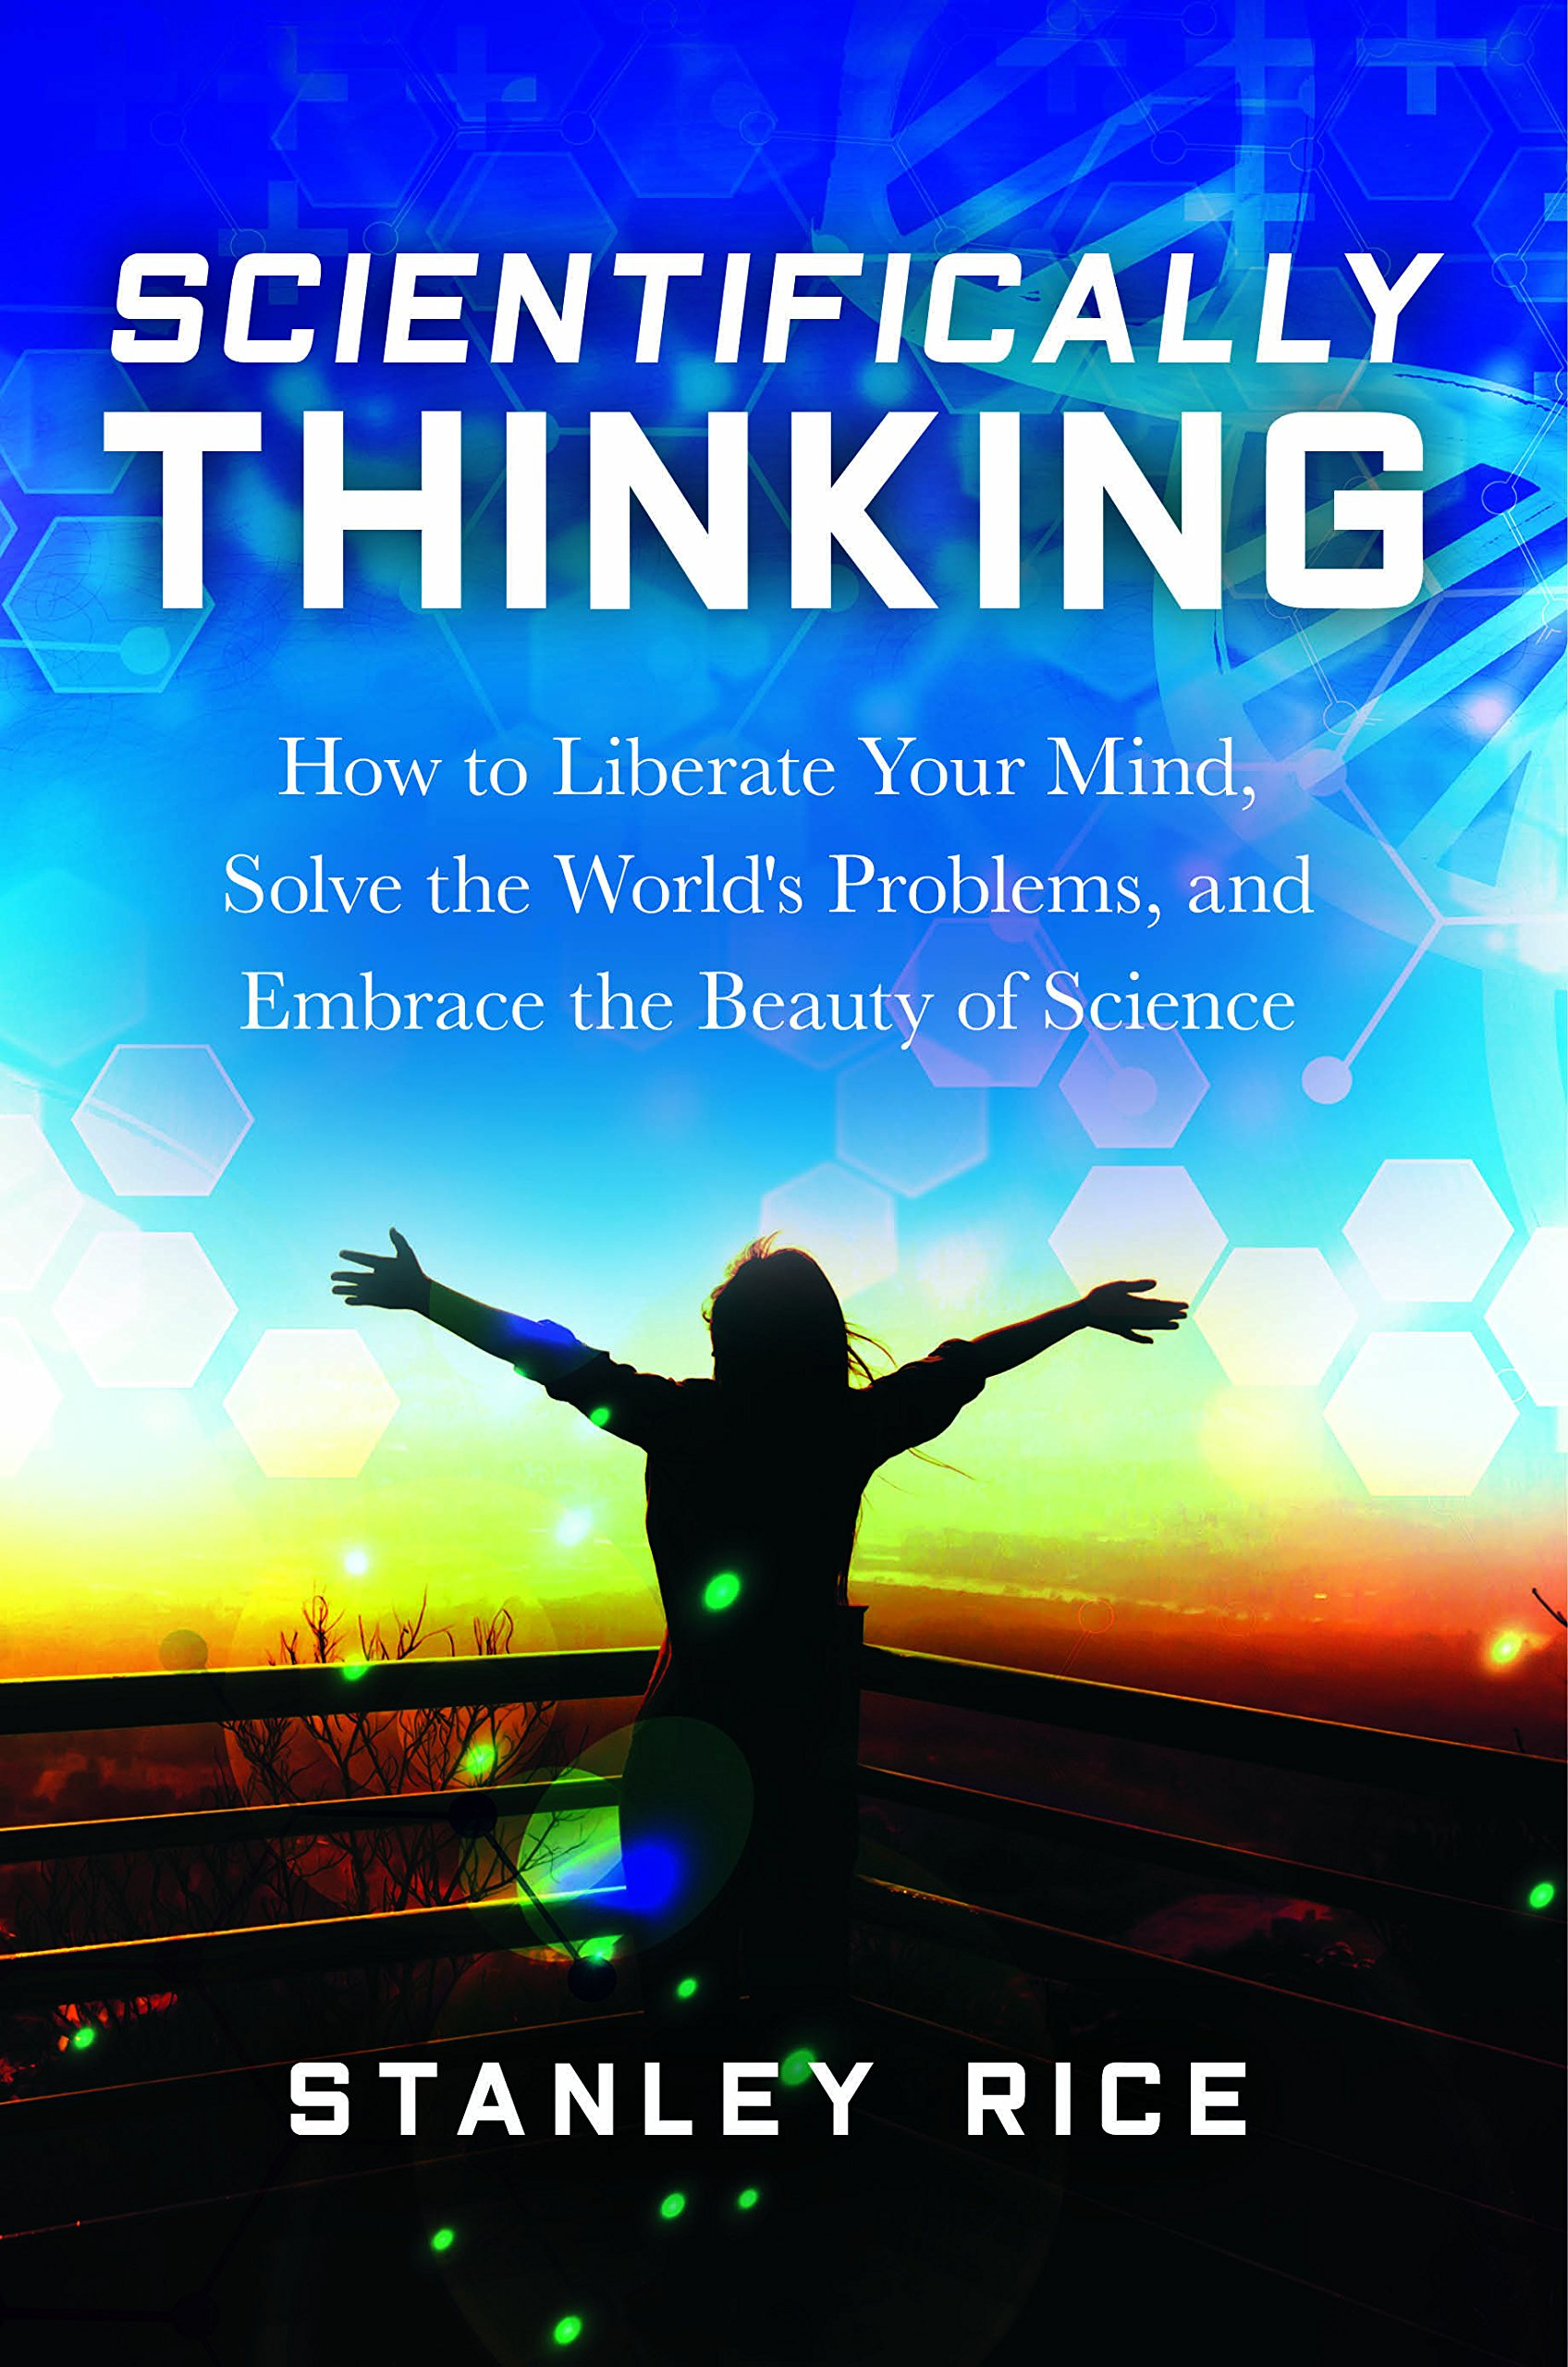 Cover of the book 'Scientifically Thinking'